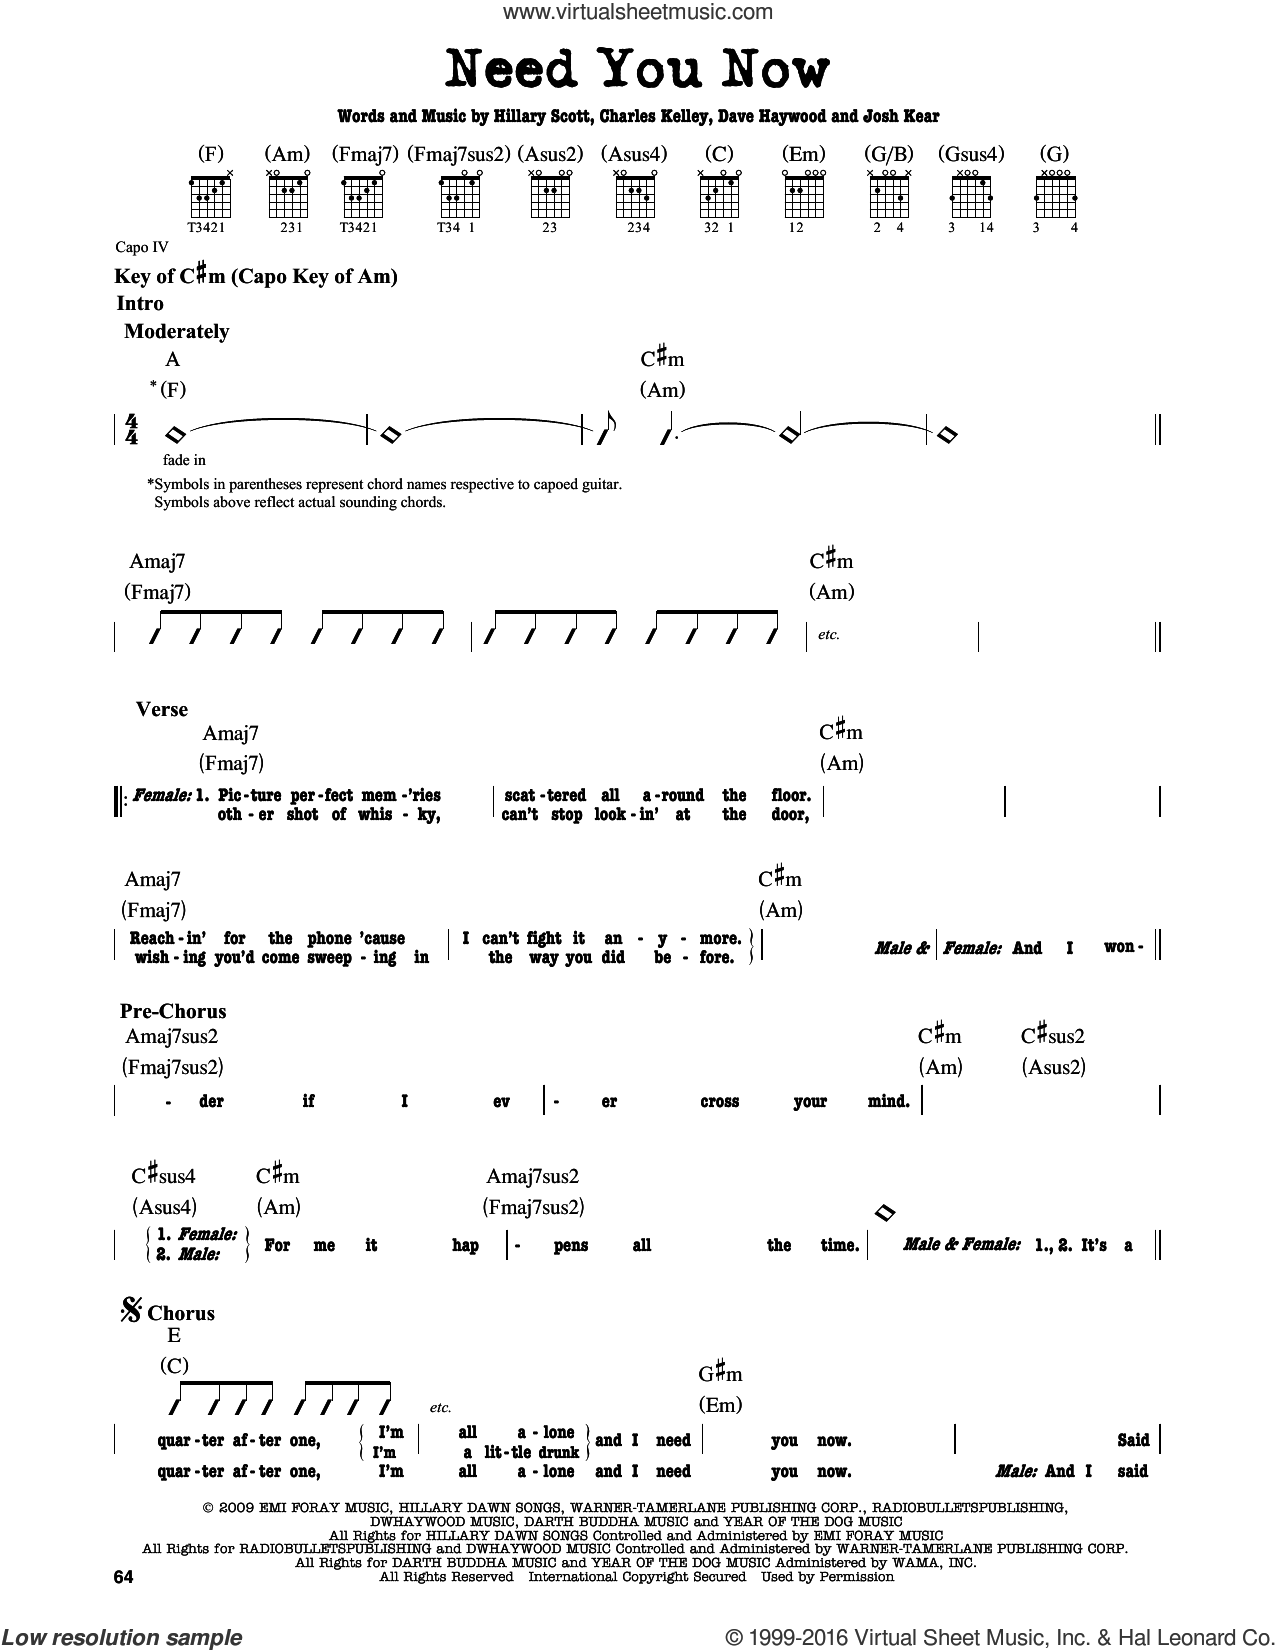 Need You Now sheet music for guitar solo (lead sheet) by Josh Kear, Lady Antebellum, Charles Kelley, Dave Haywood and Hillary Scott. Score Image Preview.